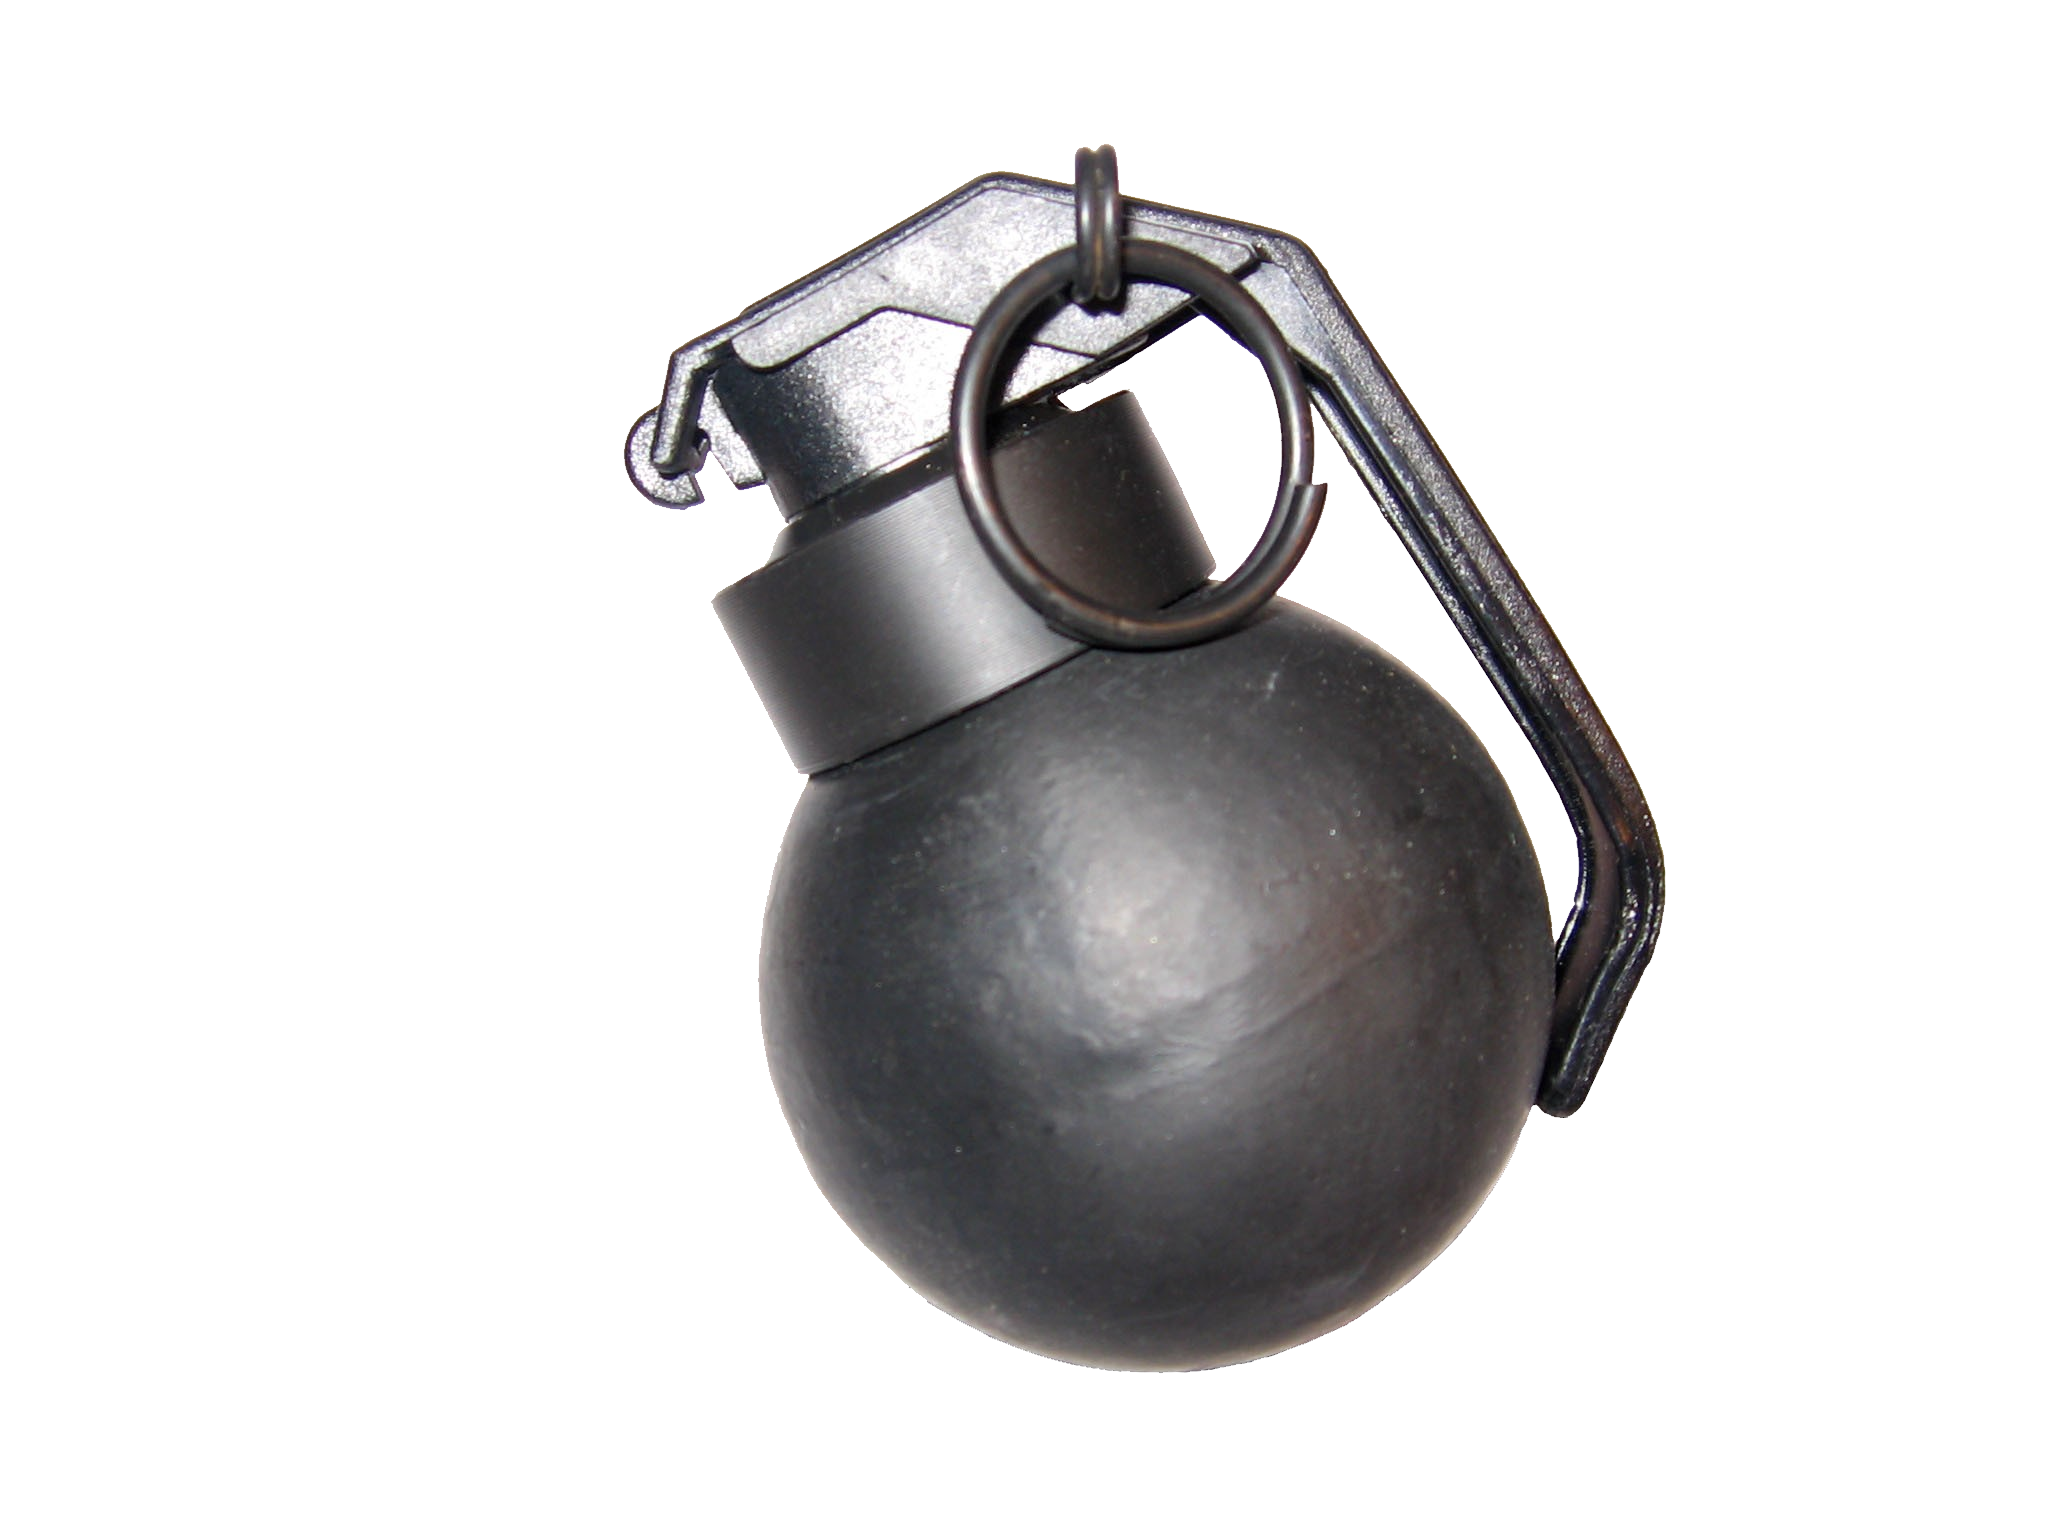 Grenade png images hand. Hands clipart bomb